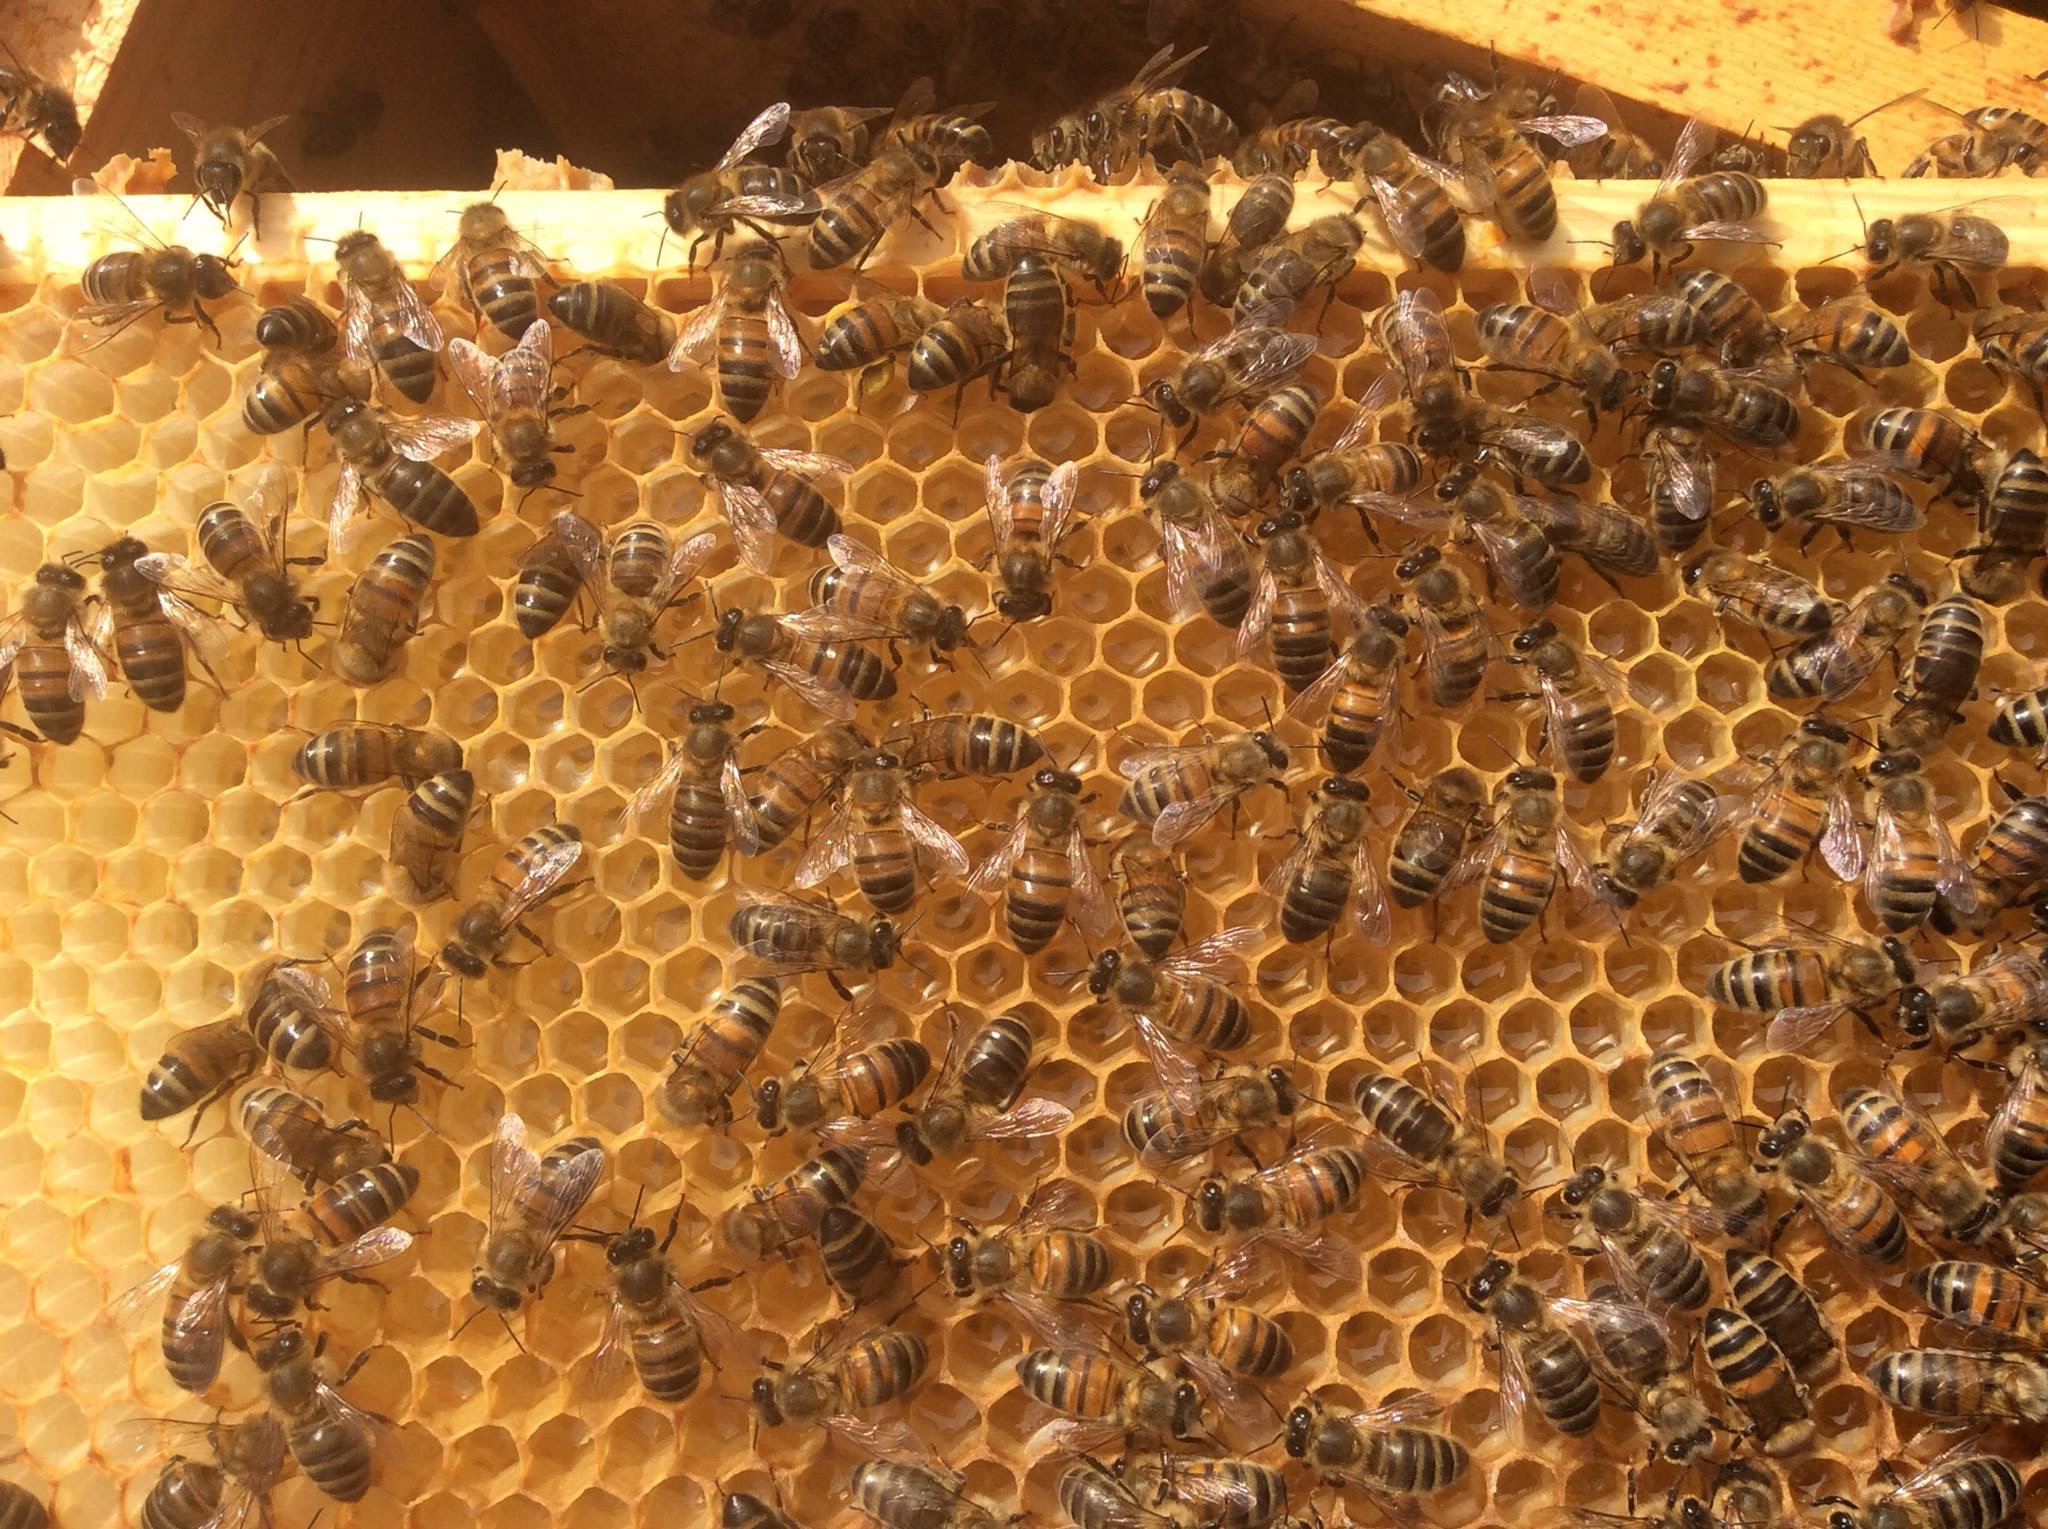 Herefordshire Bees.JPG